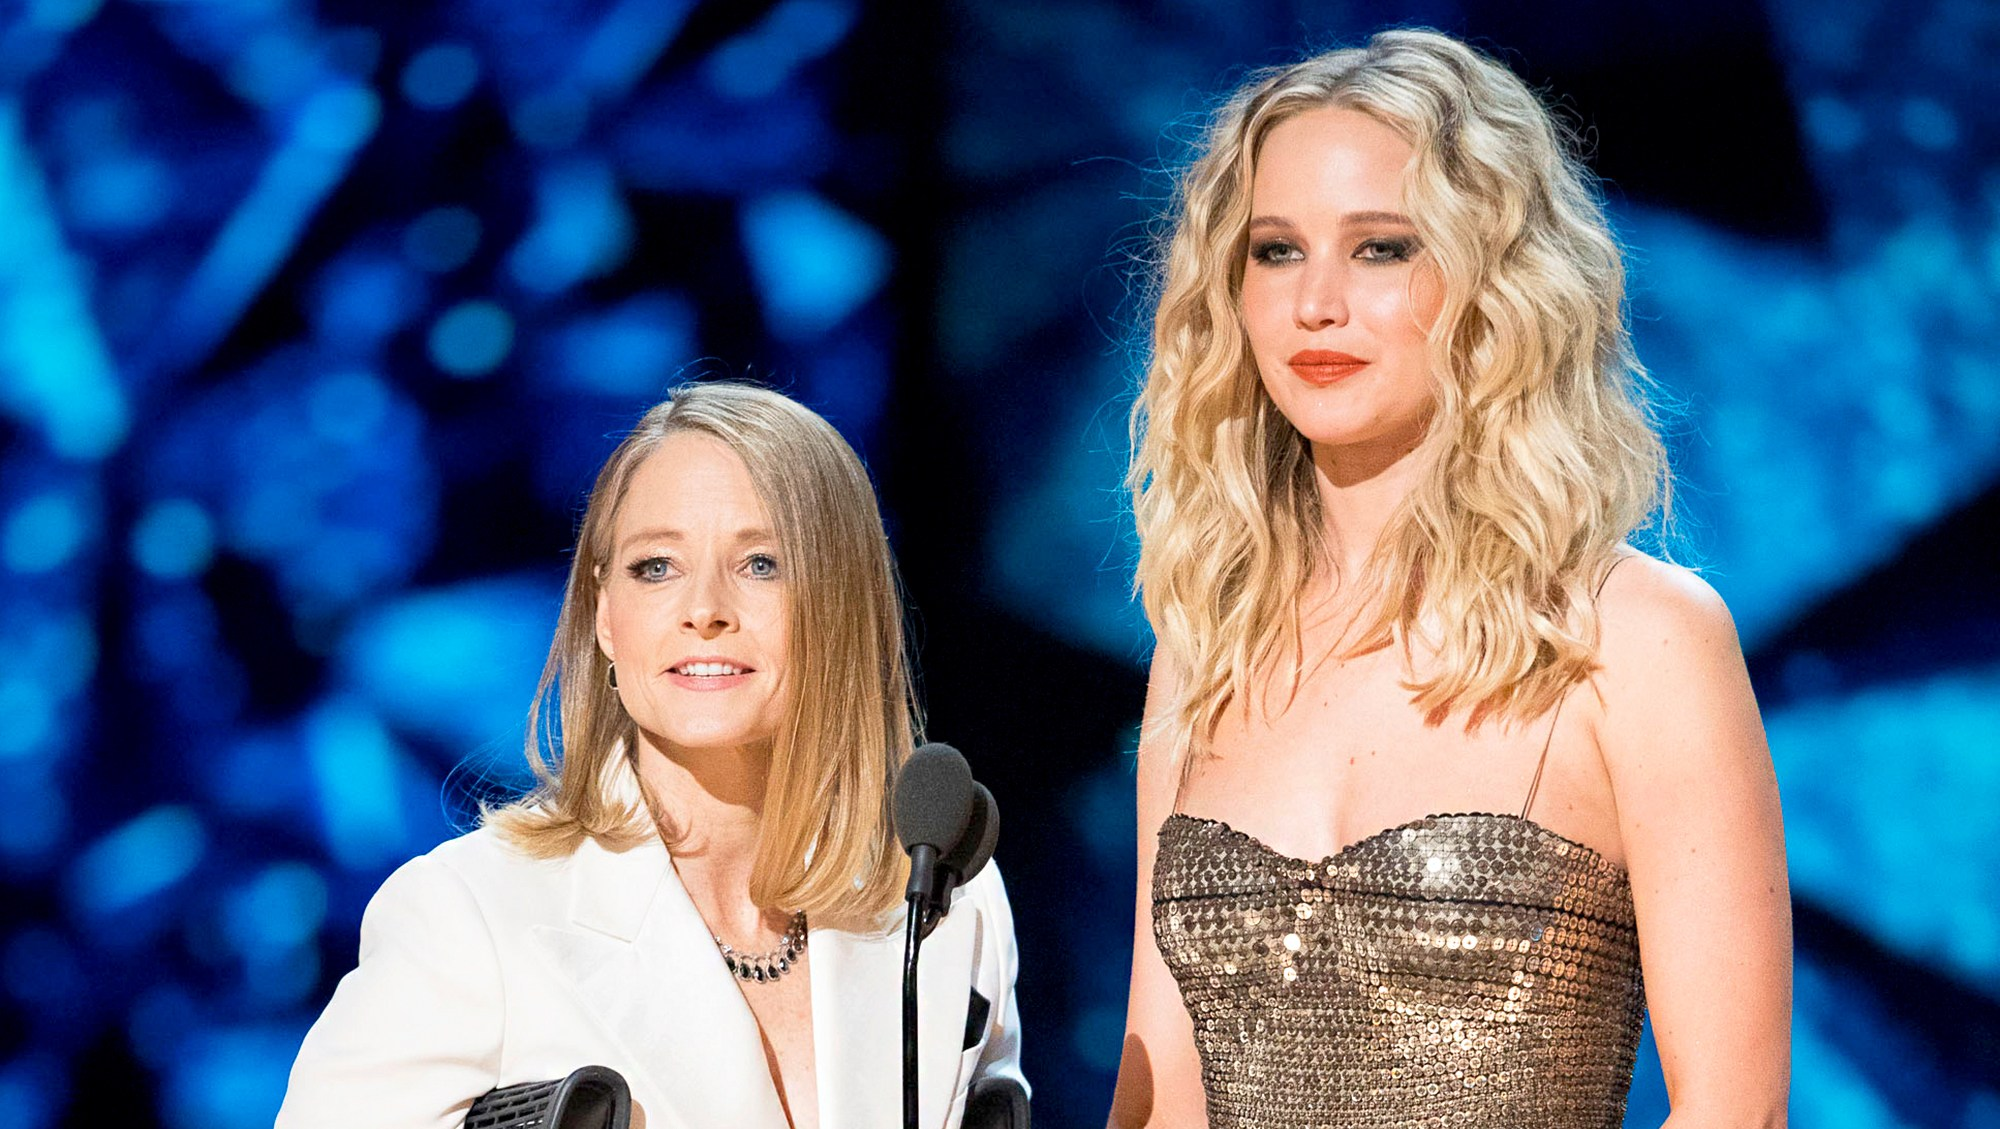 Jodie Foster and Jennifer Lawrence during the 90th Annual Academy Awards show on March 4, 2018 in Hollywood, California.